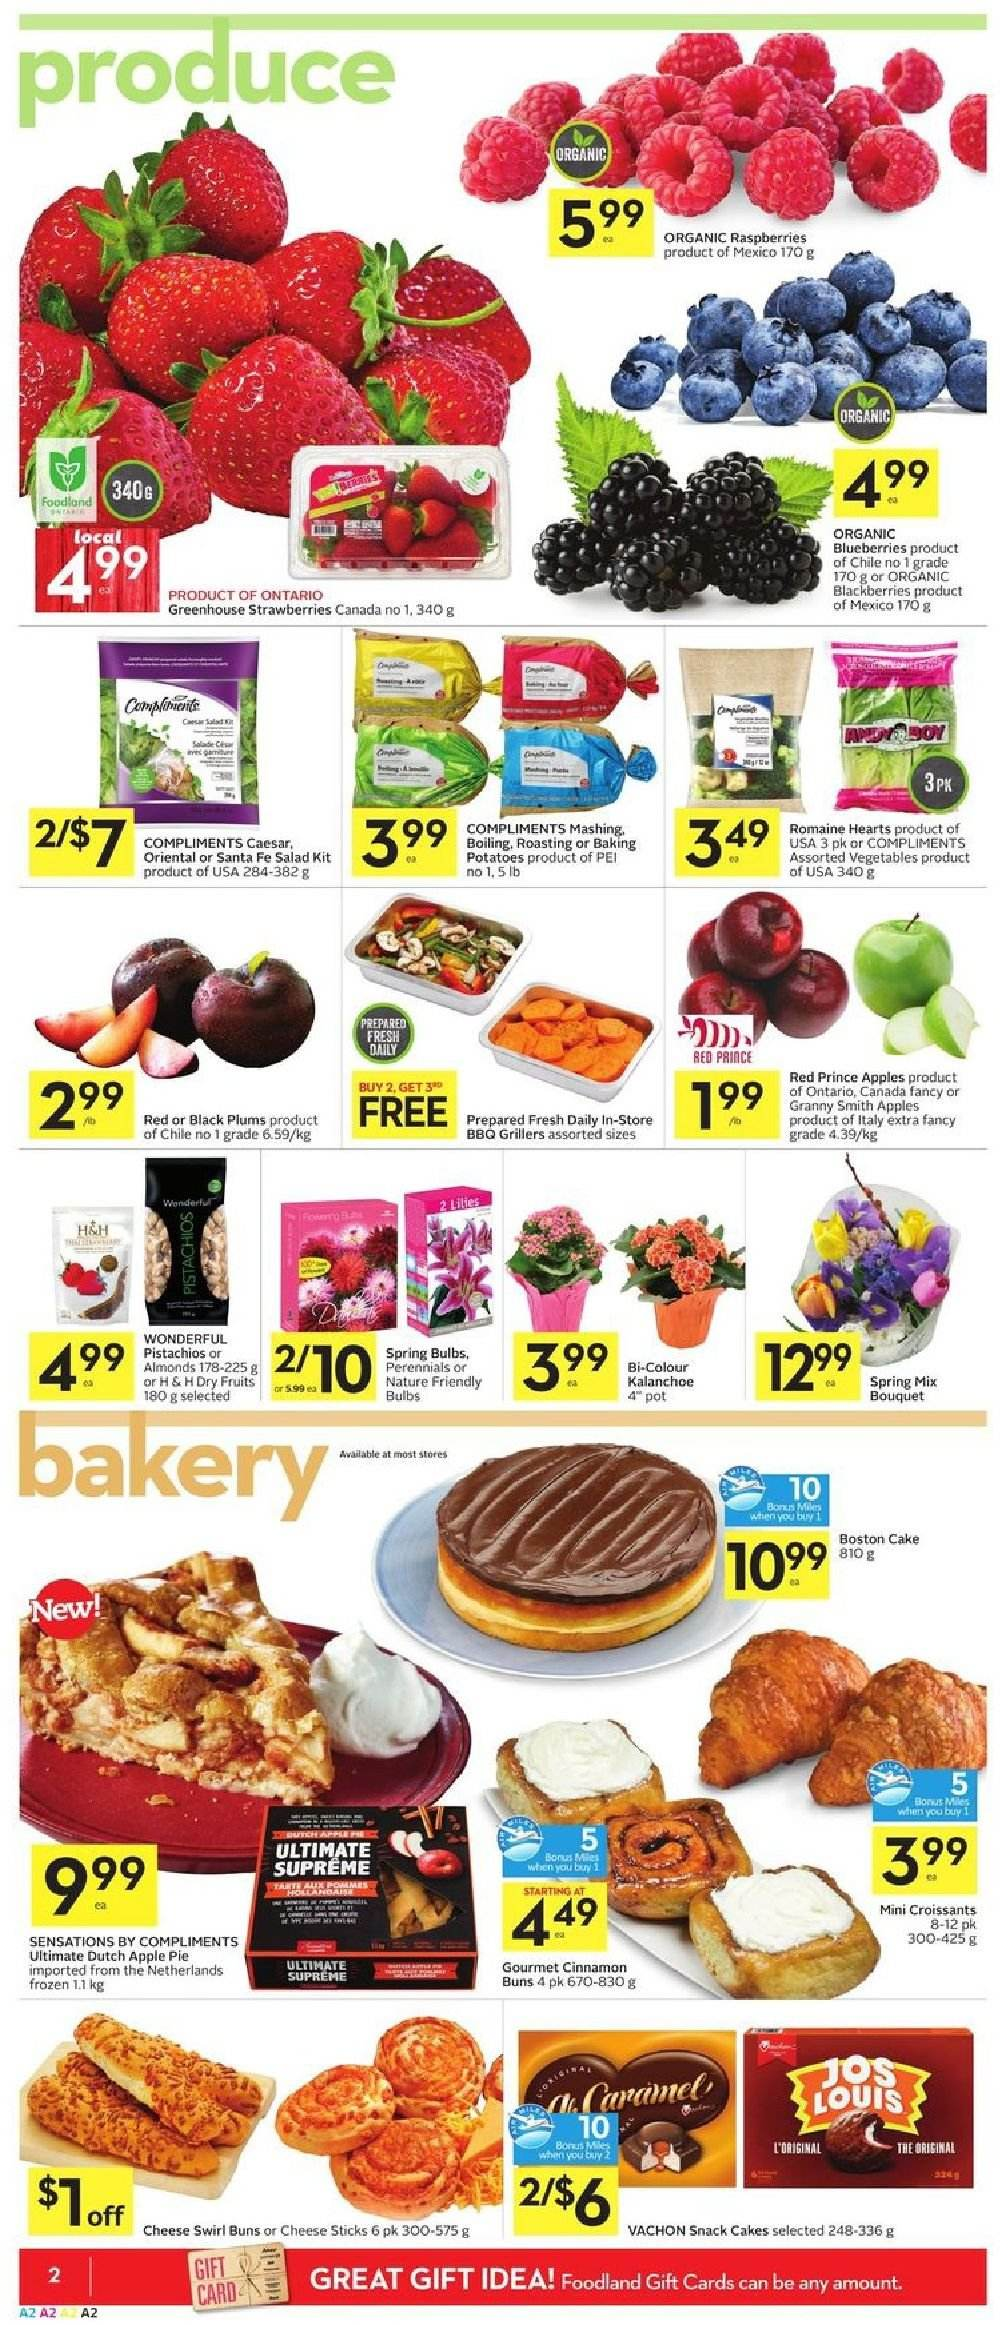 Foodland Flyer  - March 28, 2019 - April 03, 2019. Page 2.